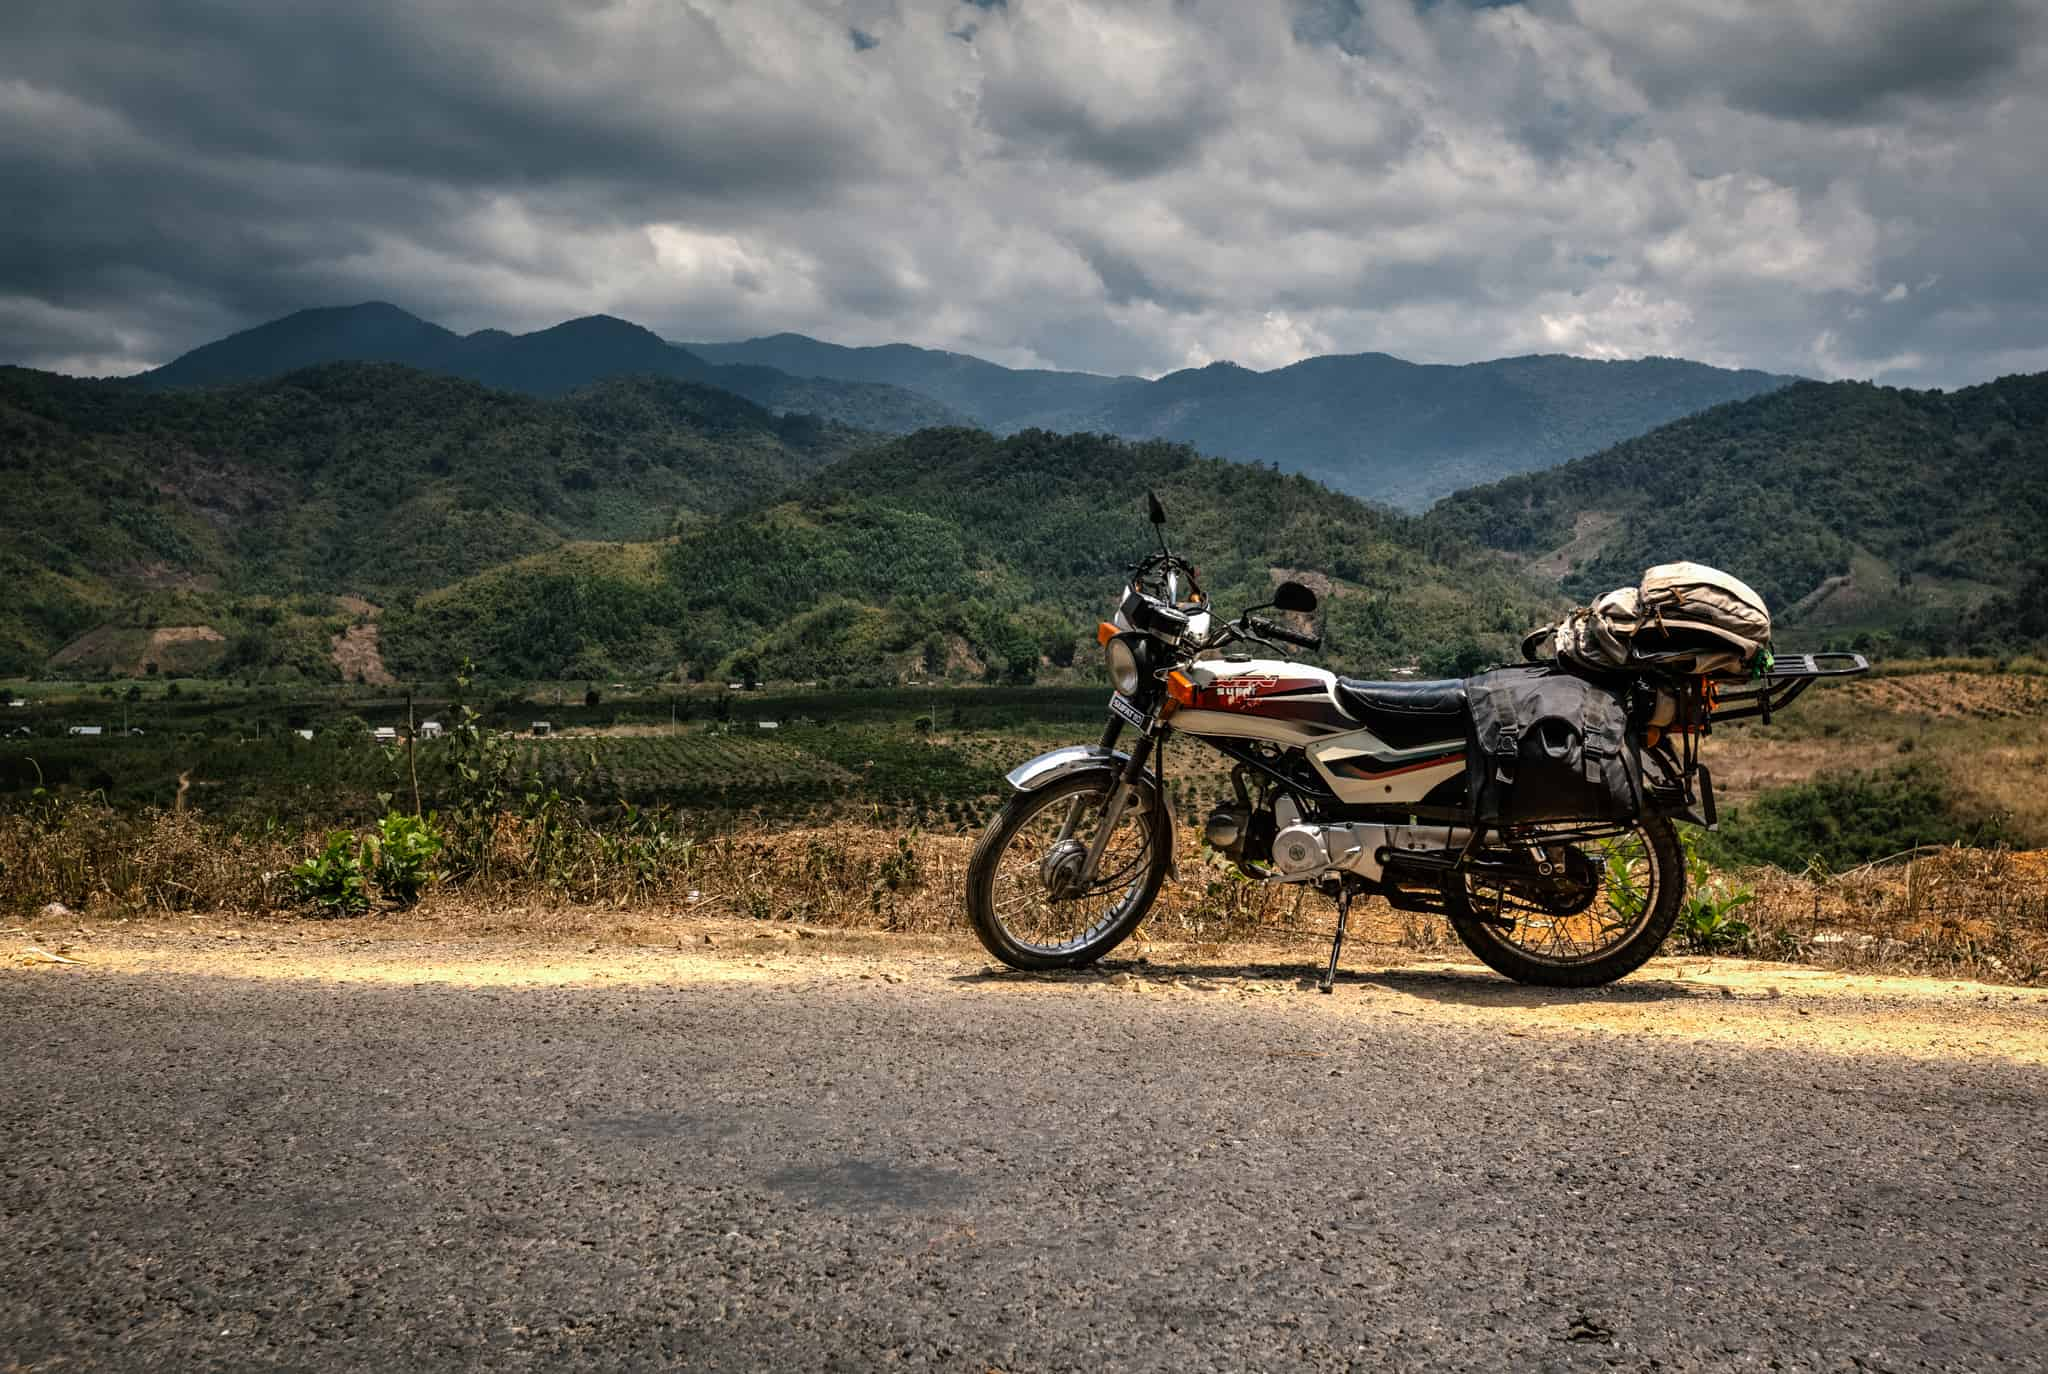 Travel from Hanoi to Halong Bay by motorbike